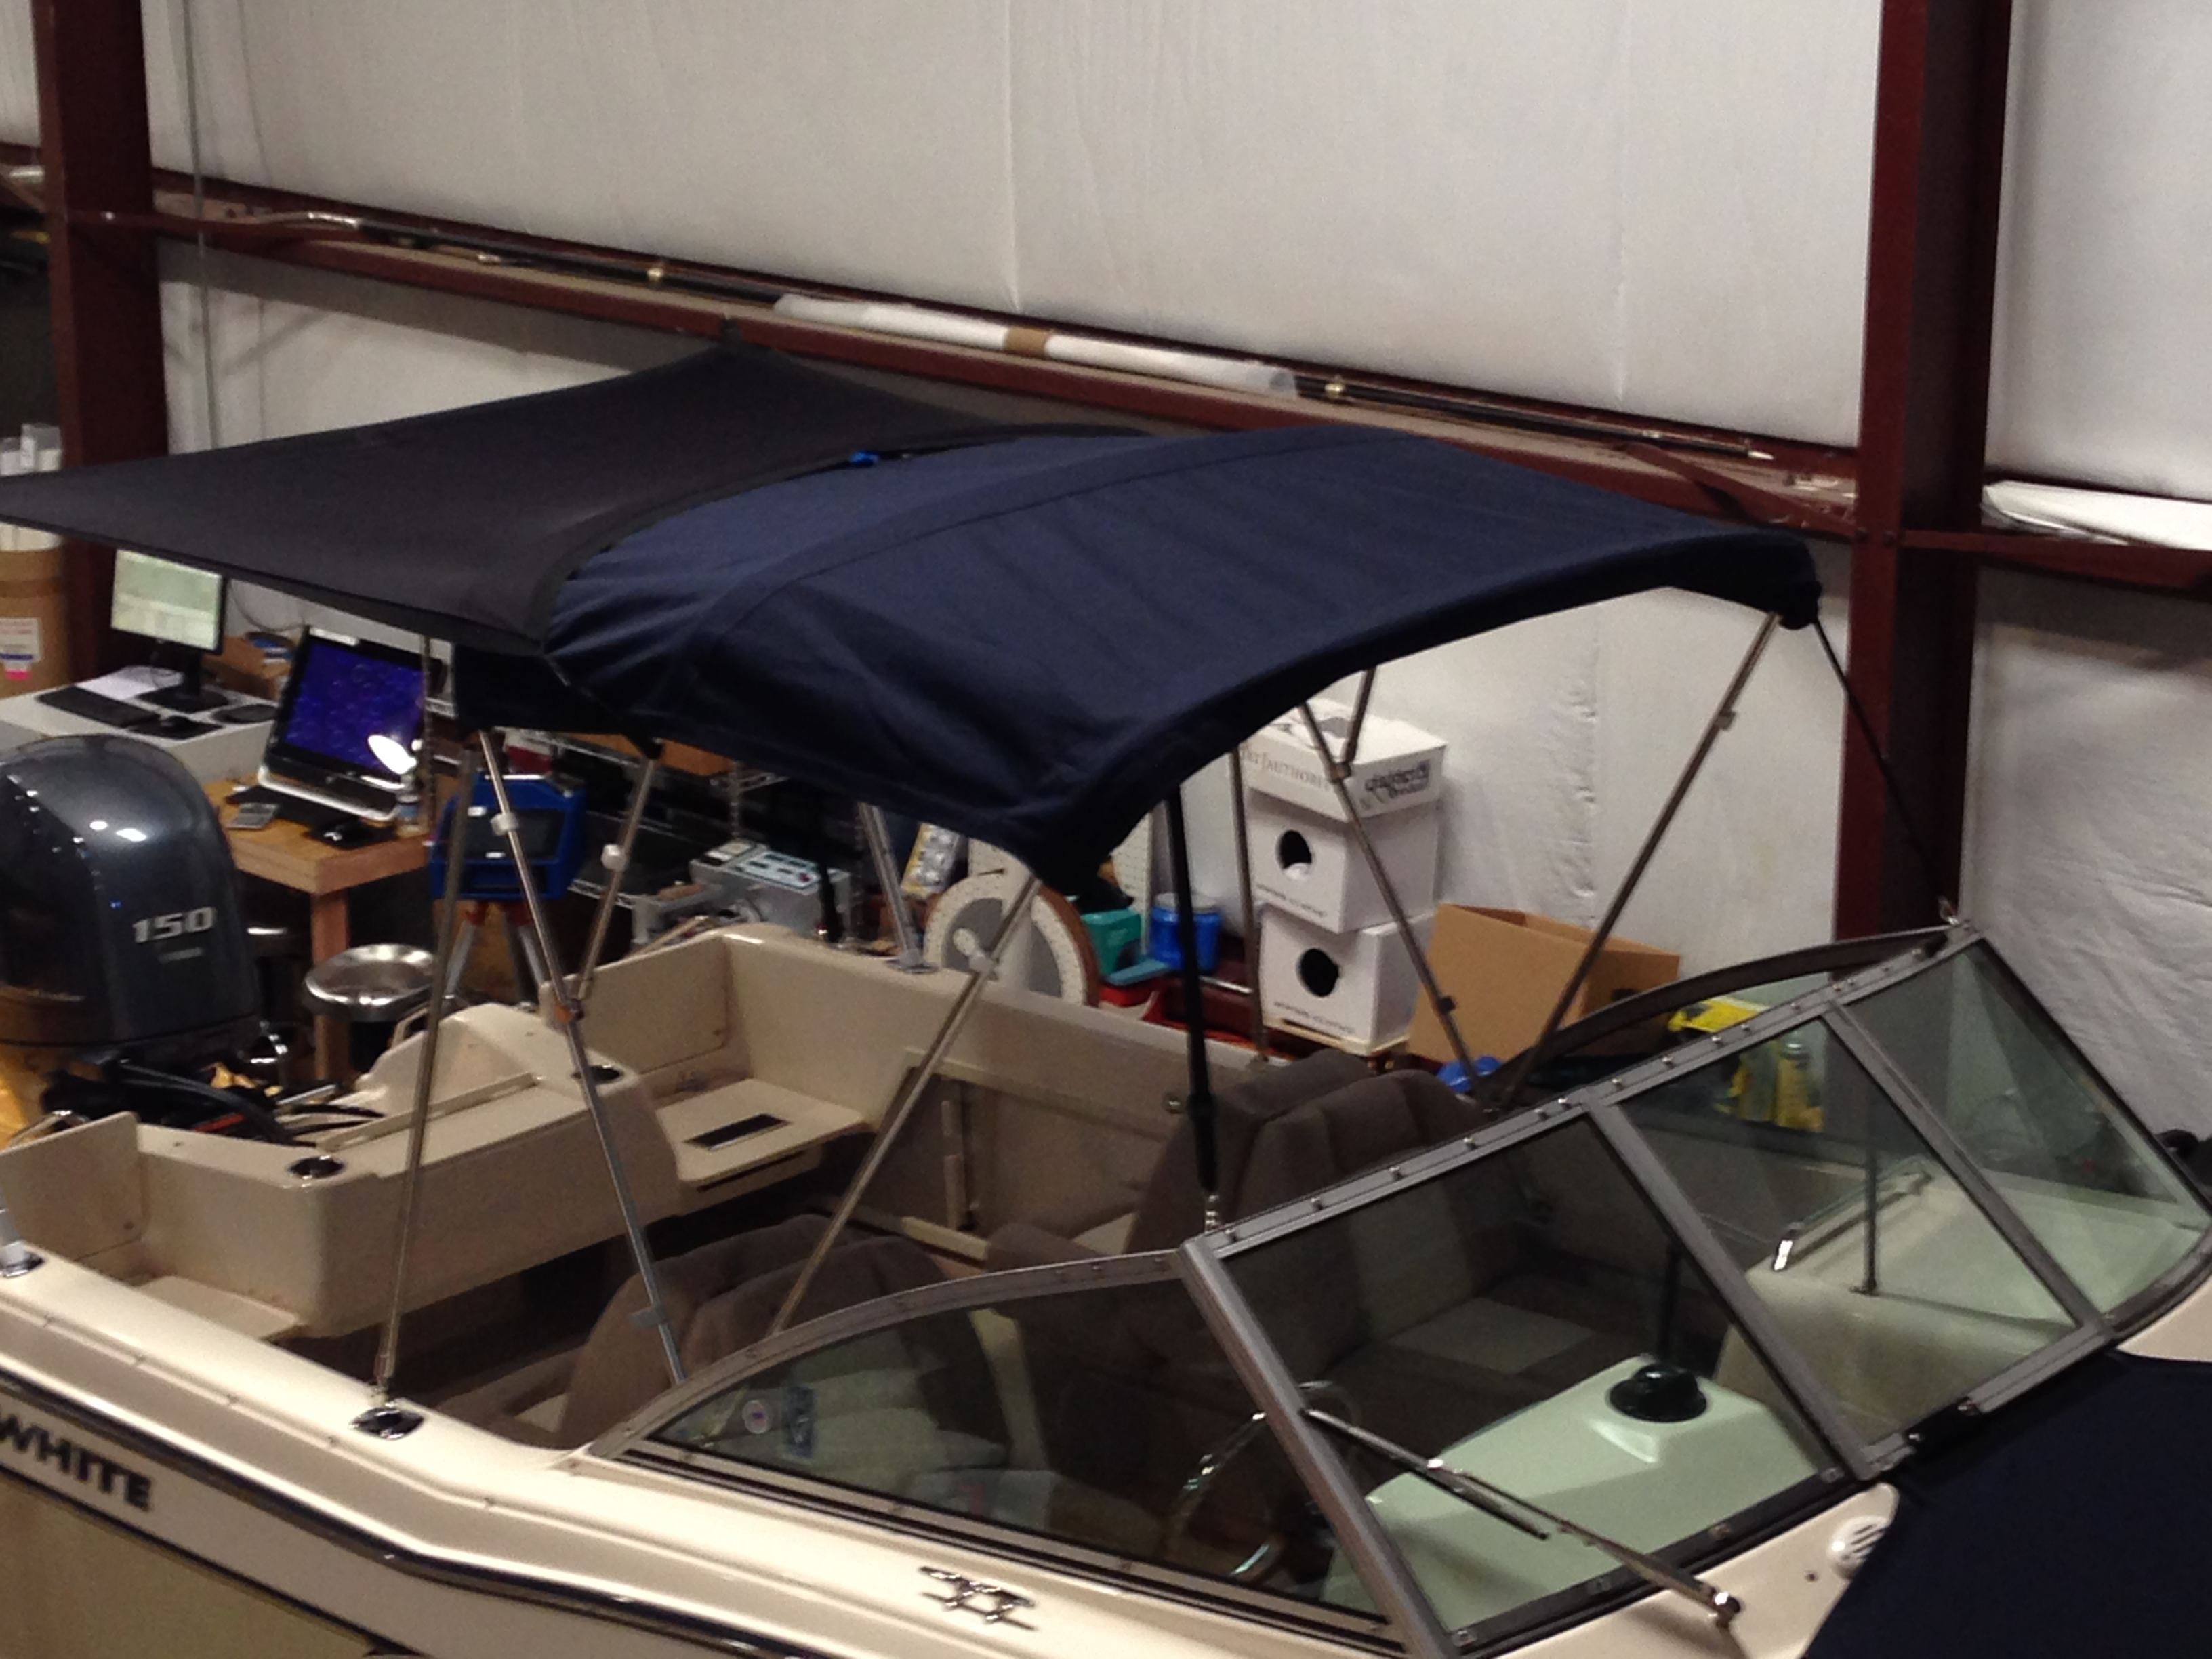 Grady White Tournament 192, 20xx Boat Shade Kit Bimini, starboard front